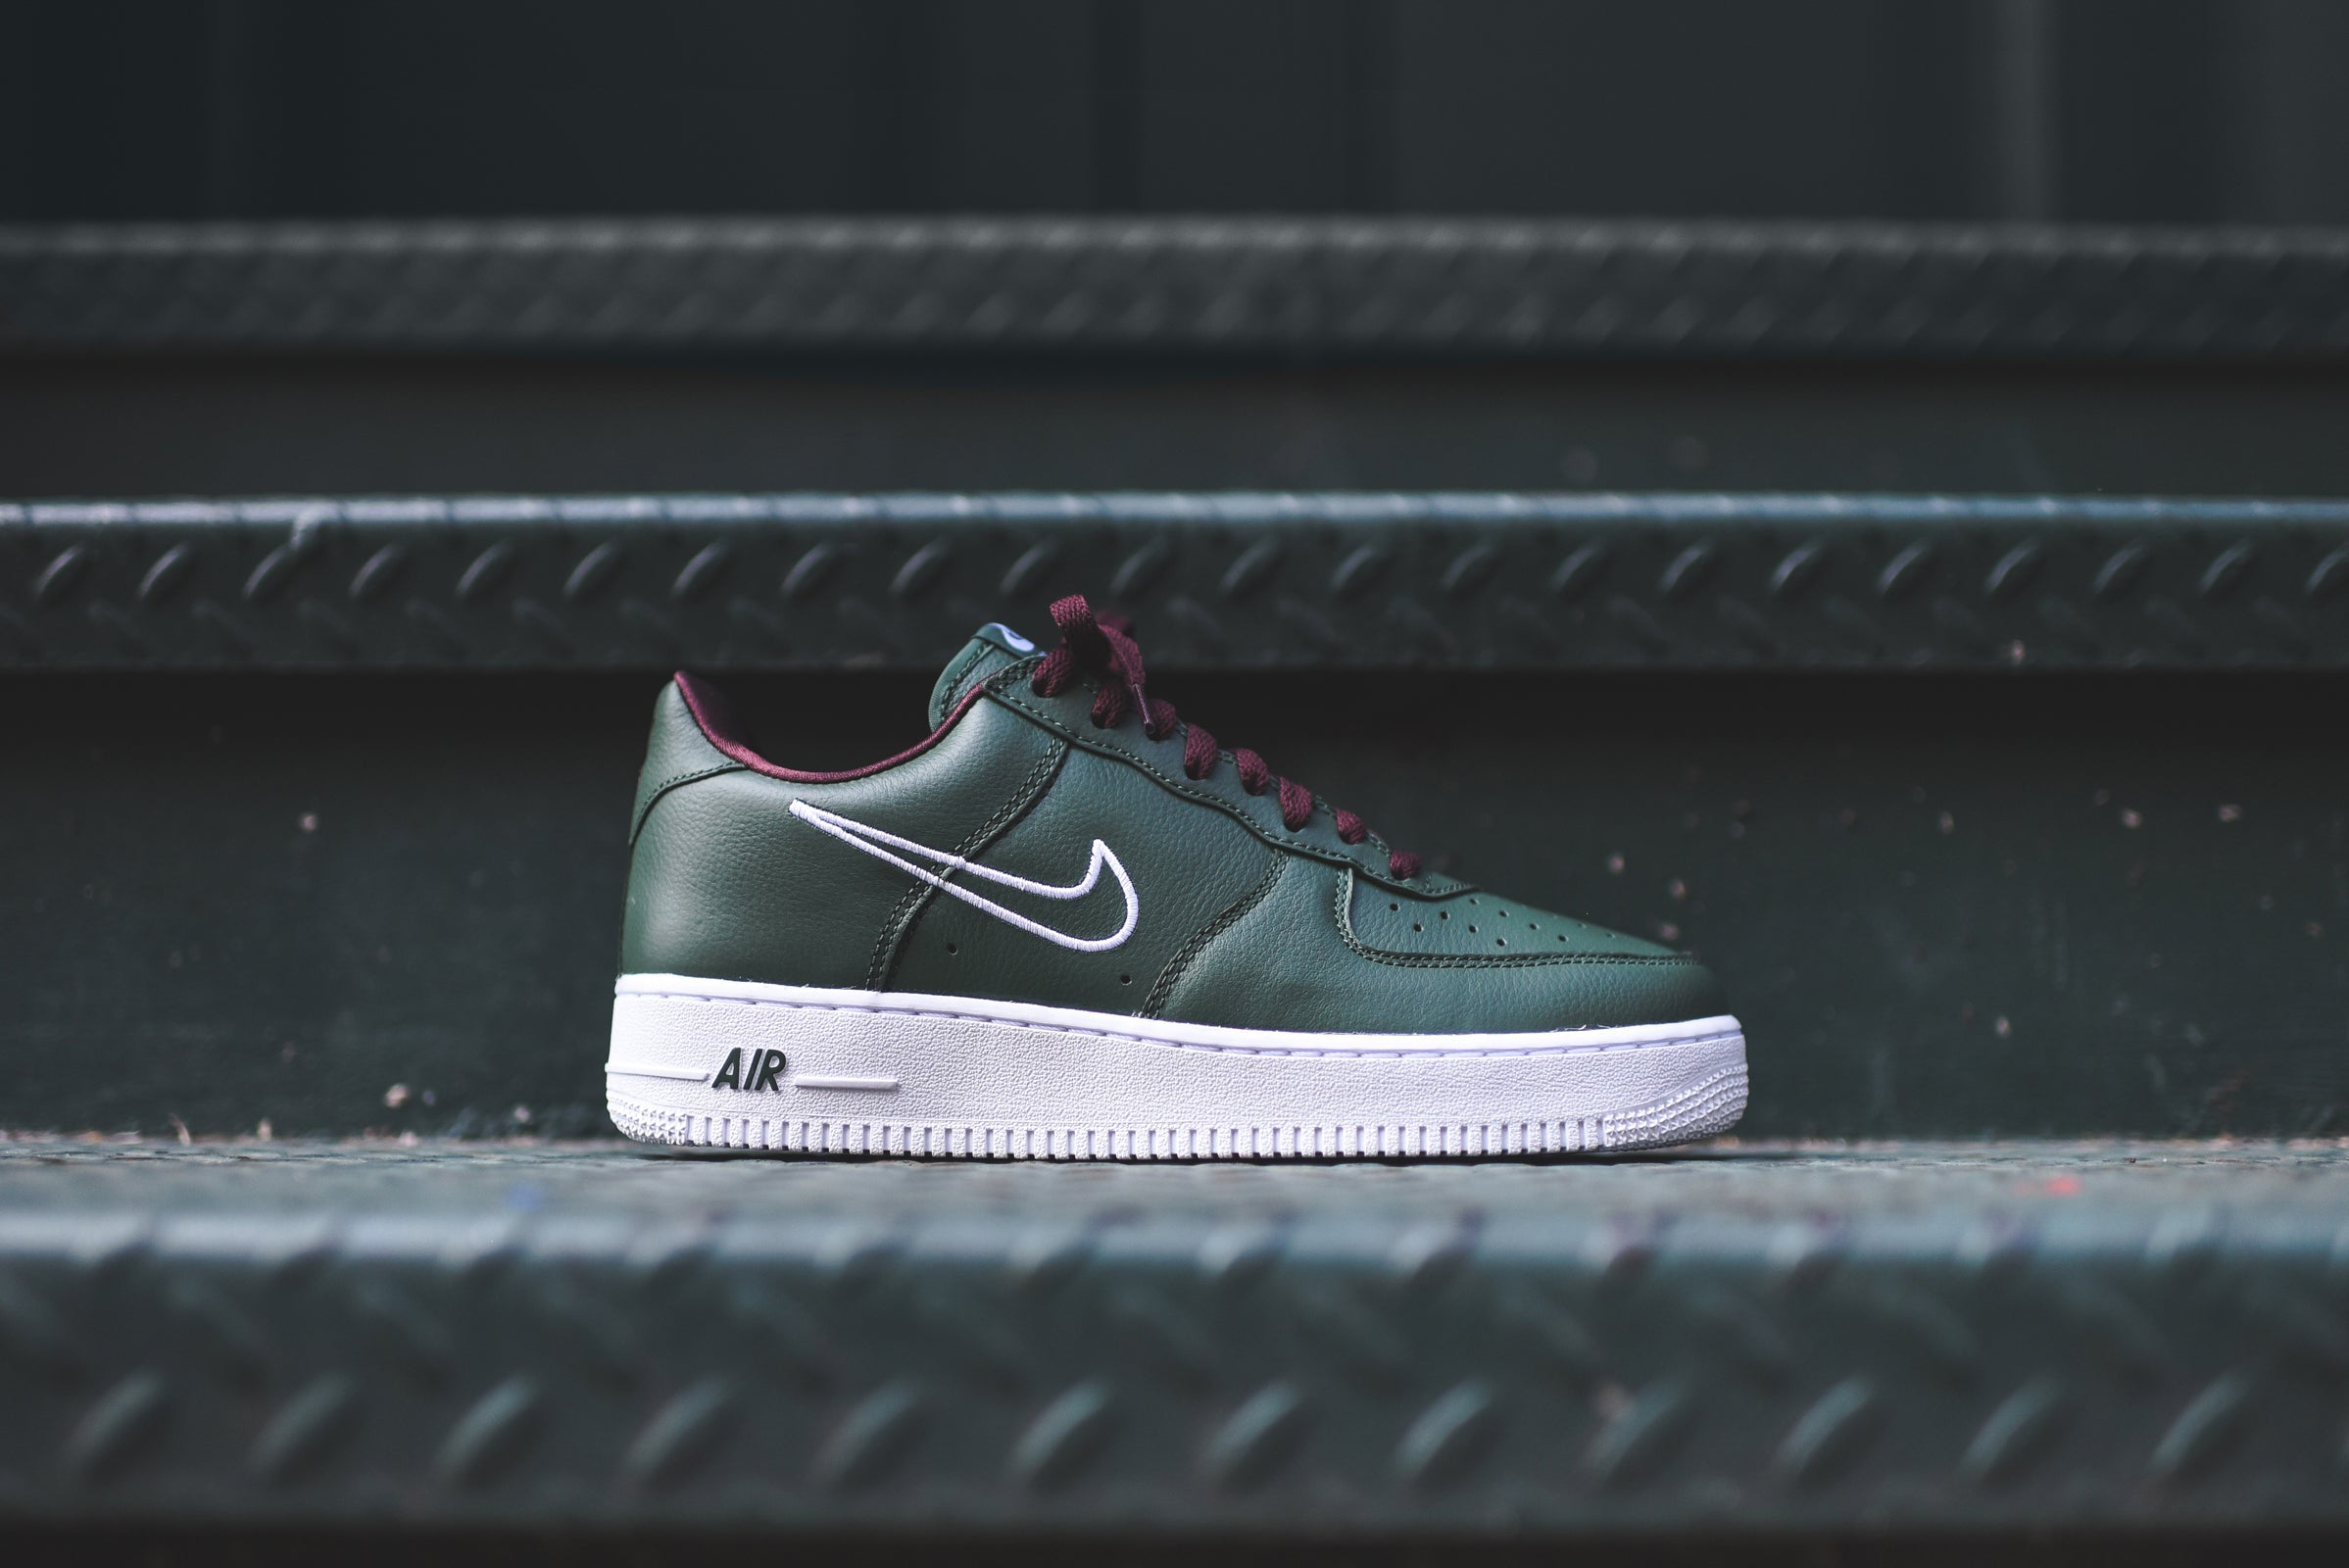 check out 70d9b 72b29 Nike Air Force 1 Low Retro - Hong Kong. February 22, 2018. -4. -1. -2